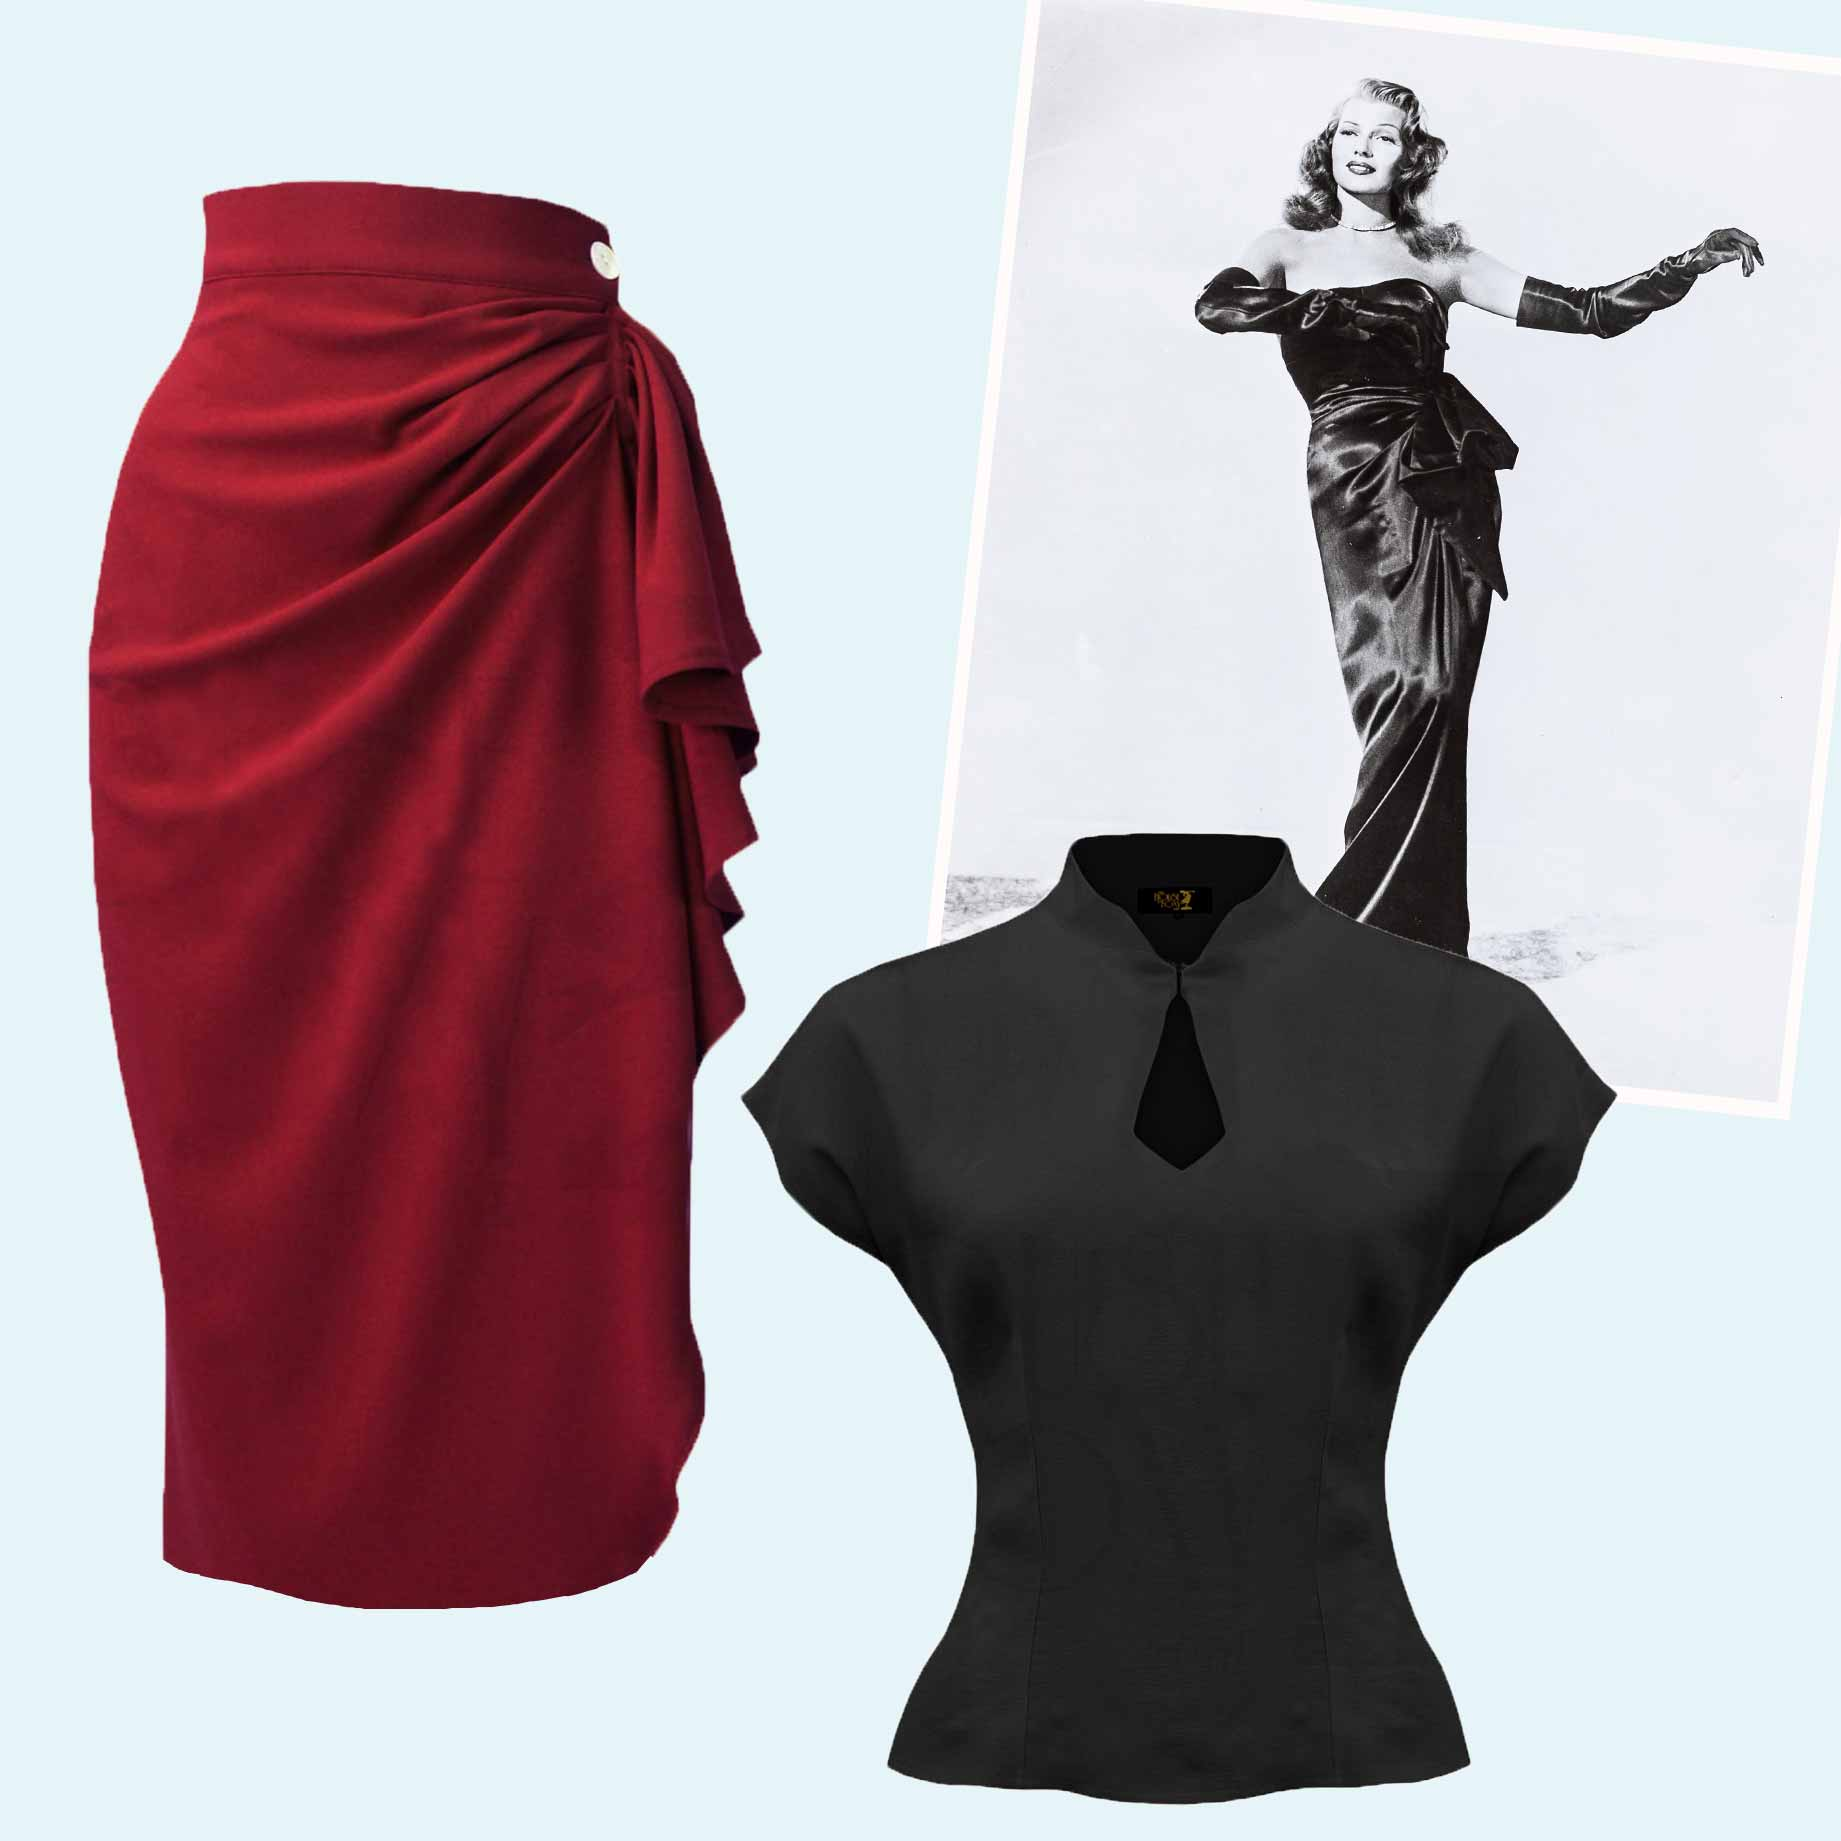 1940s inspired set consisting of top and skirt